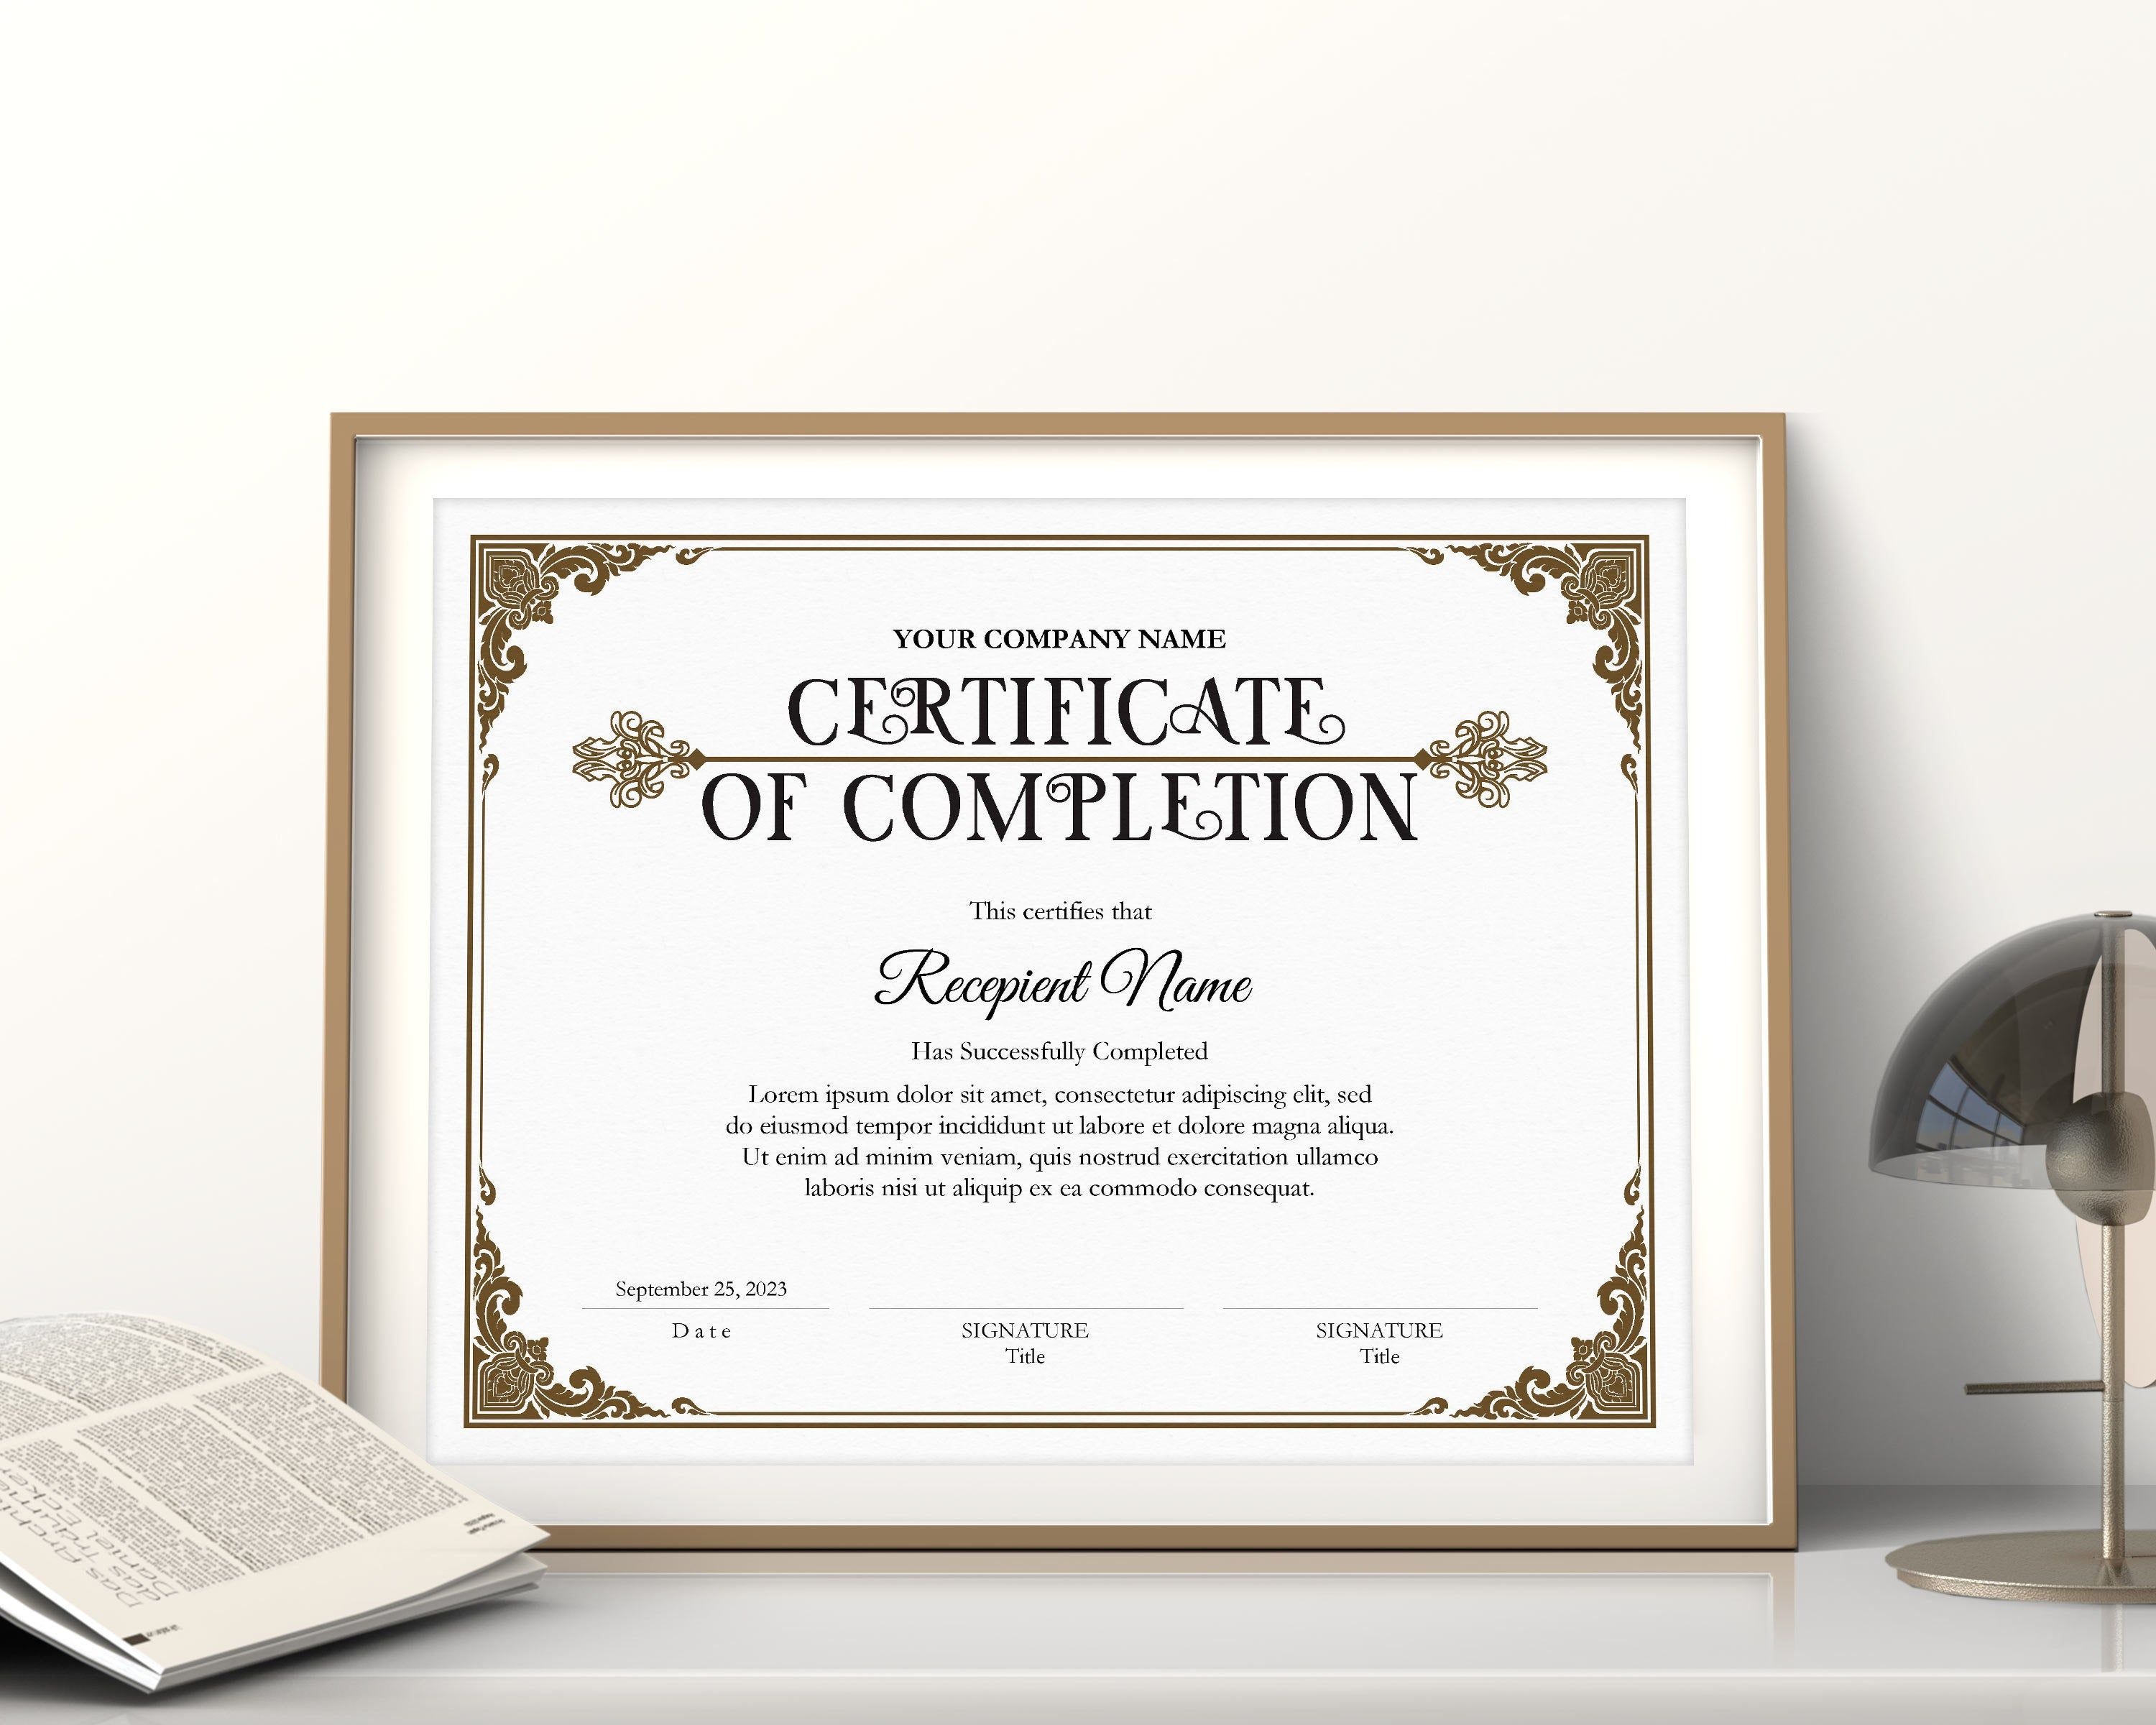 Editable Certificate Of Completion Vintage Certificate Etsy In 2020 Editable Certificates Printable Certificates Certificate Design